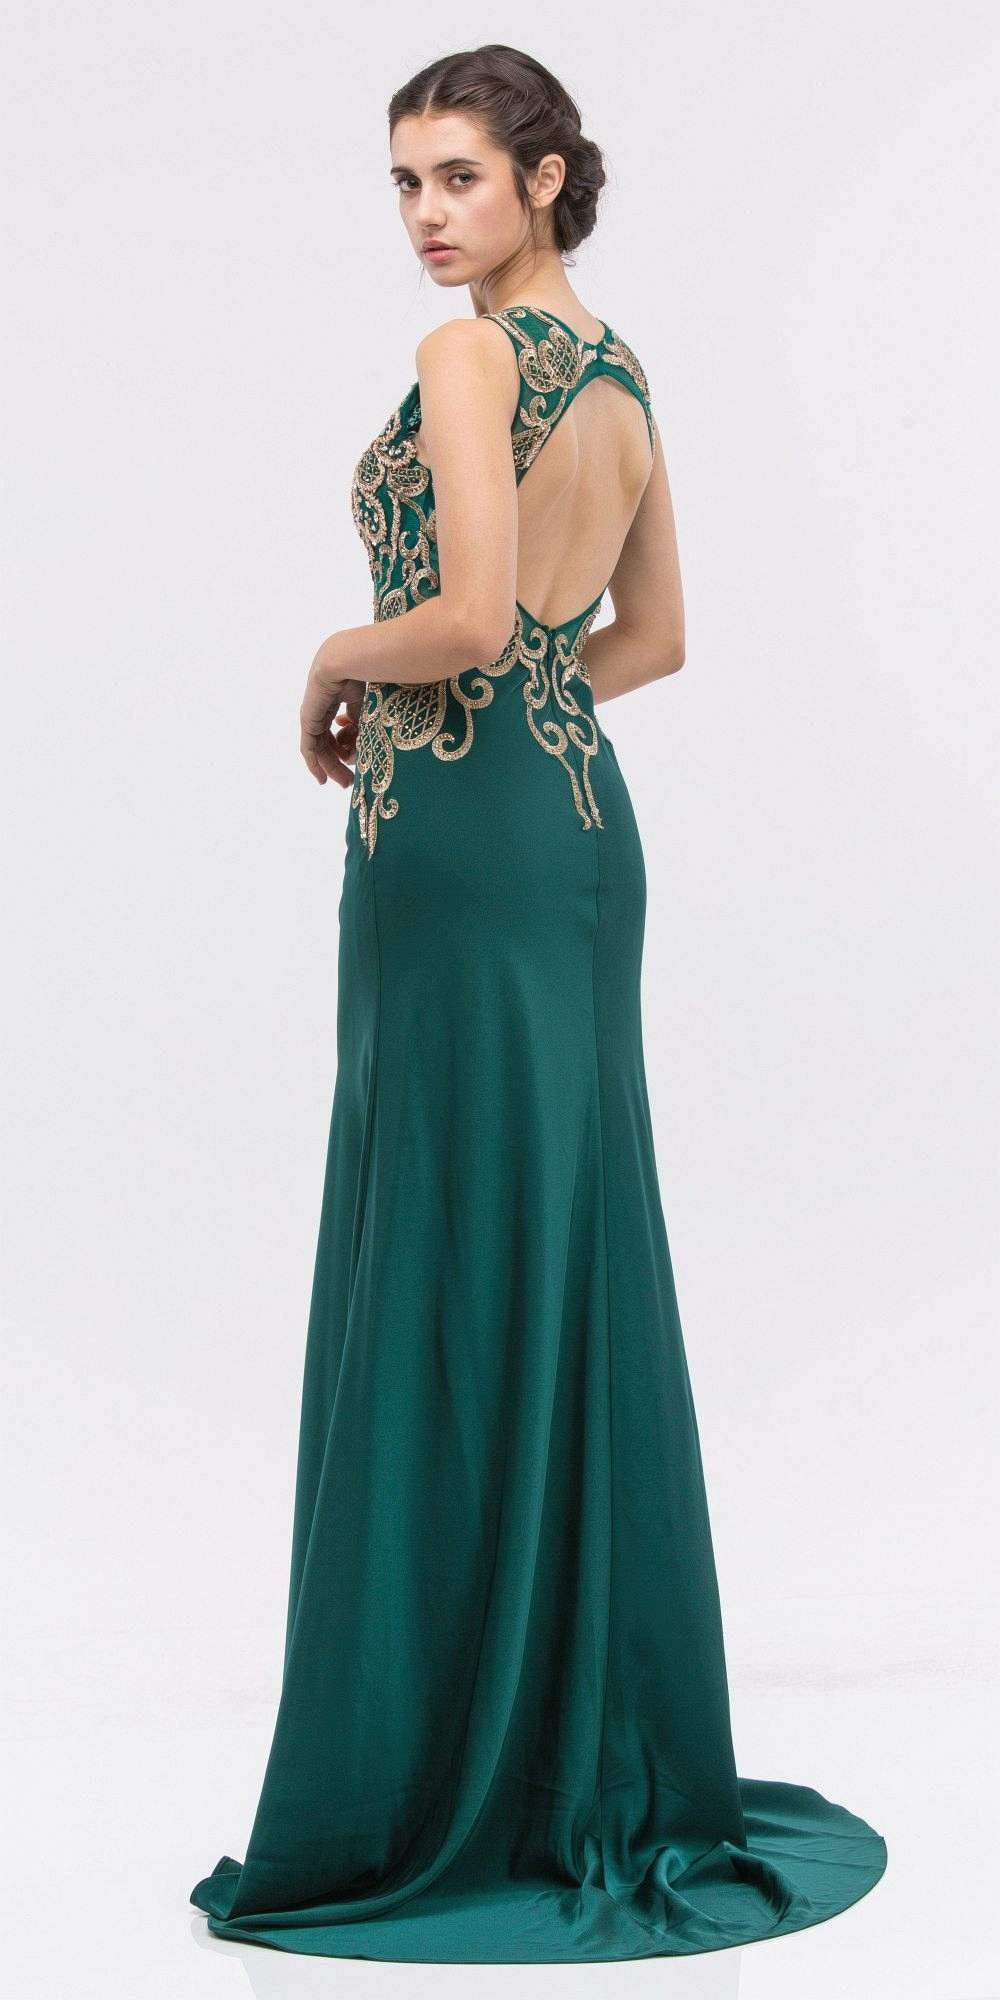 01f7eccb9d3 Eureka Fashion 6100 Embroidered Bodice Sleeveless Floor Length Prom Gown  Hunter Green – DiscountDressShop